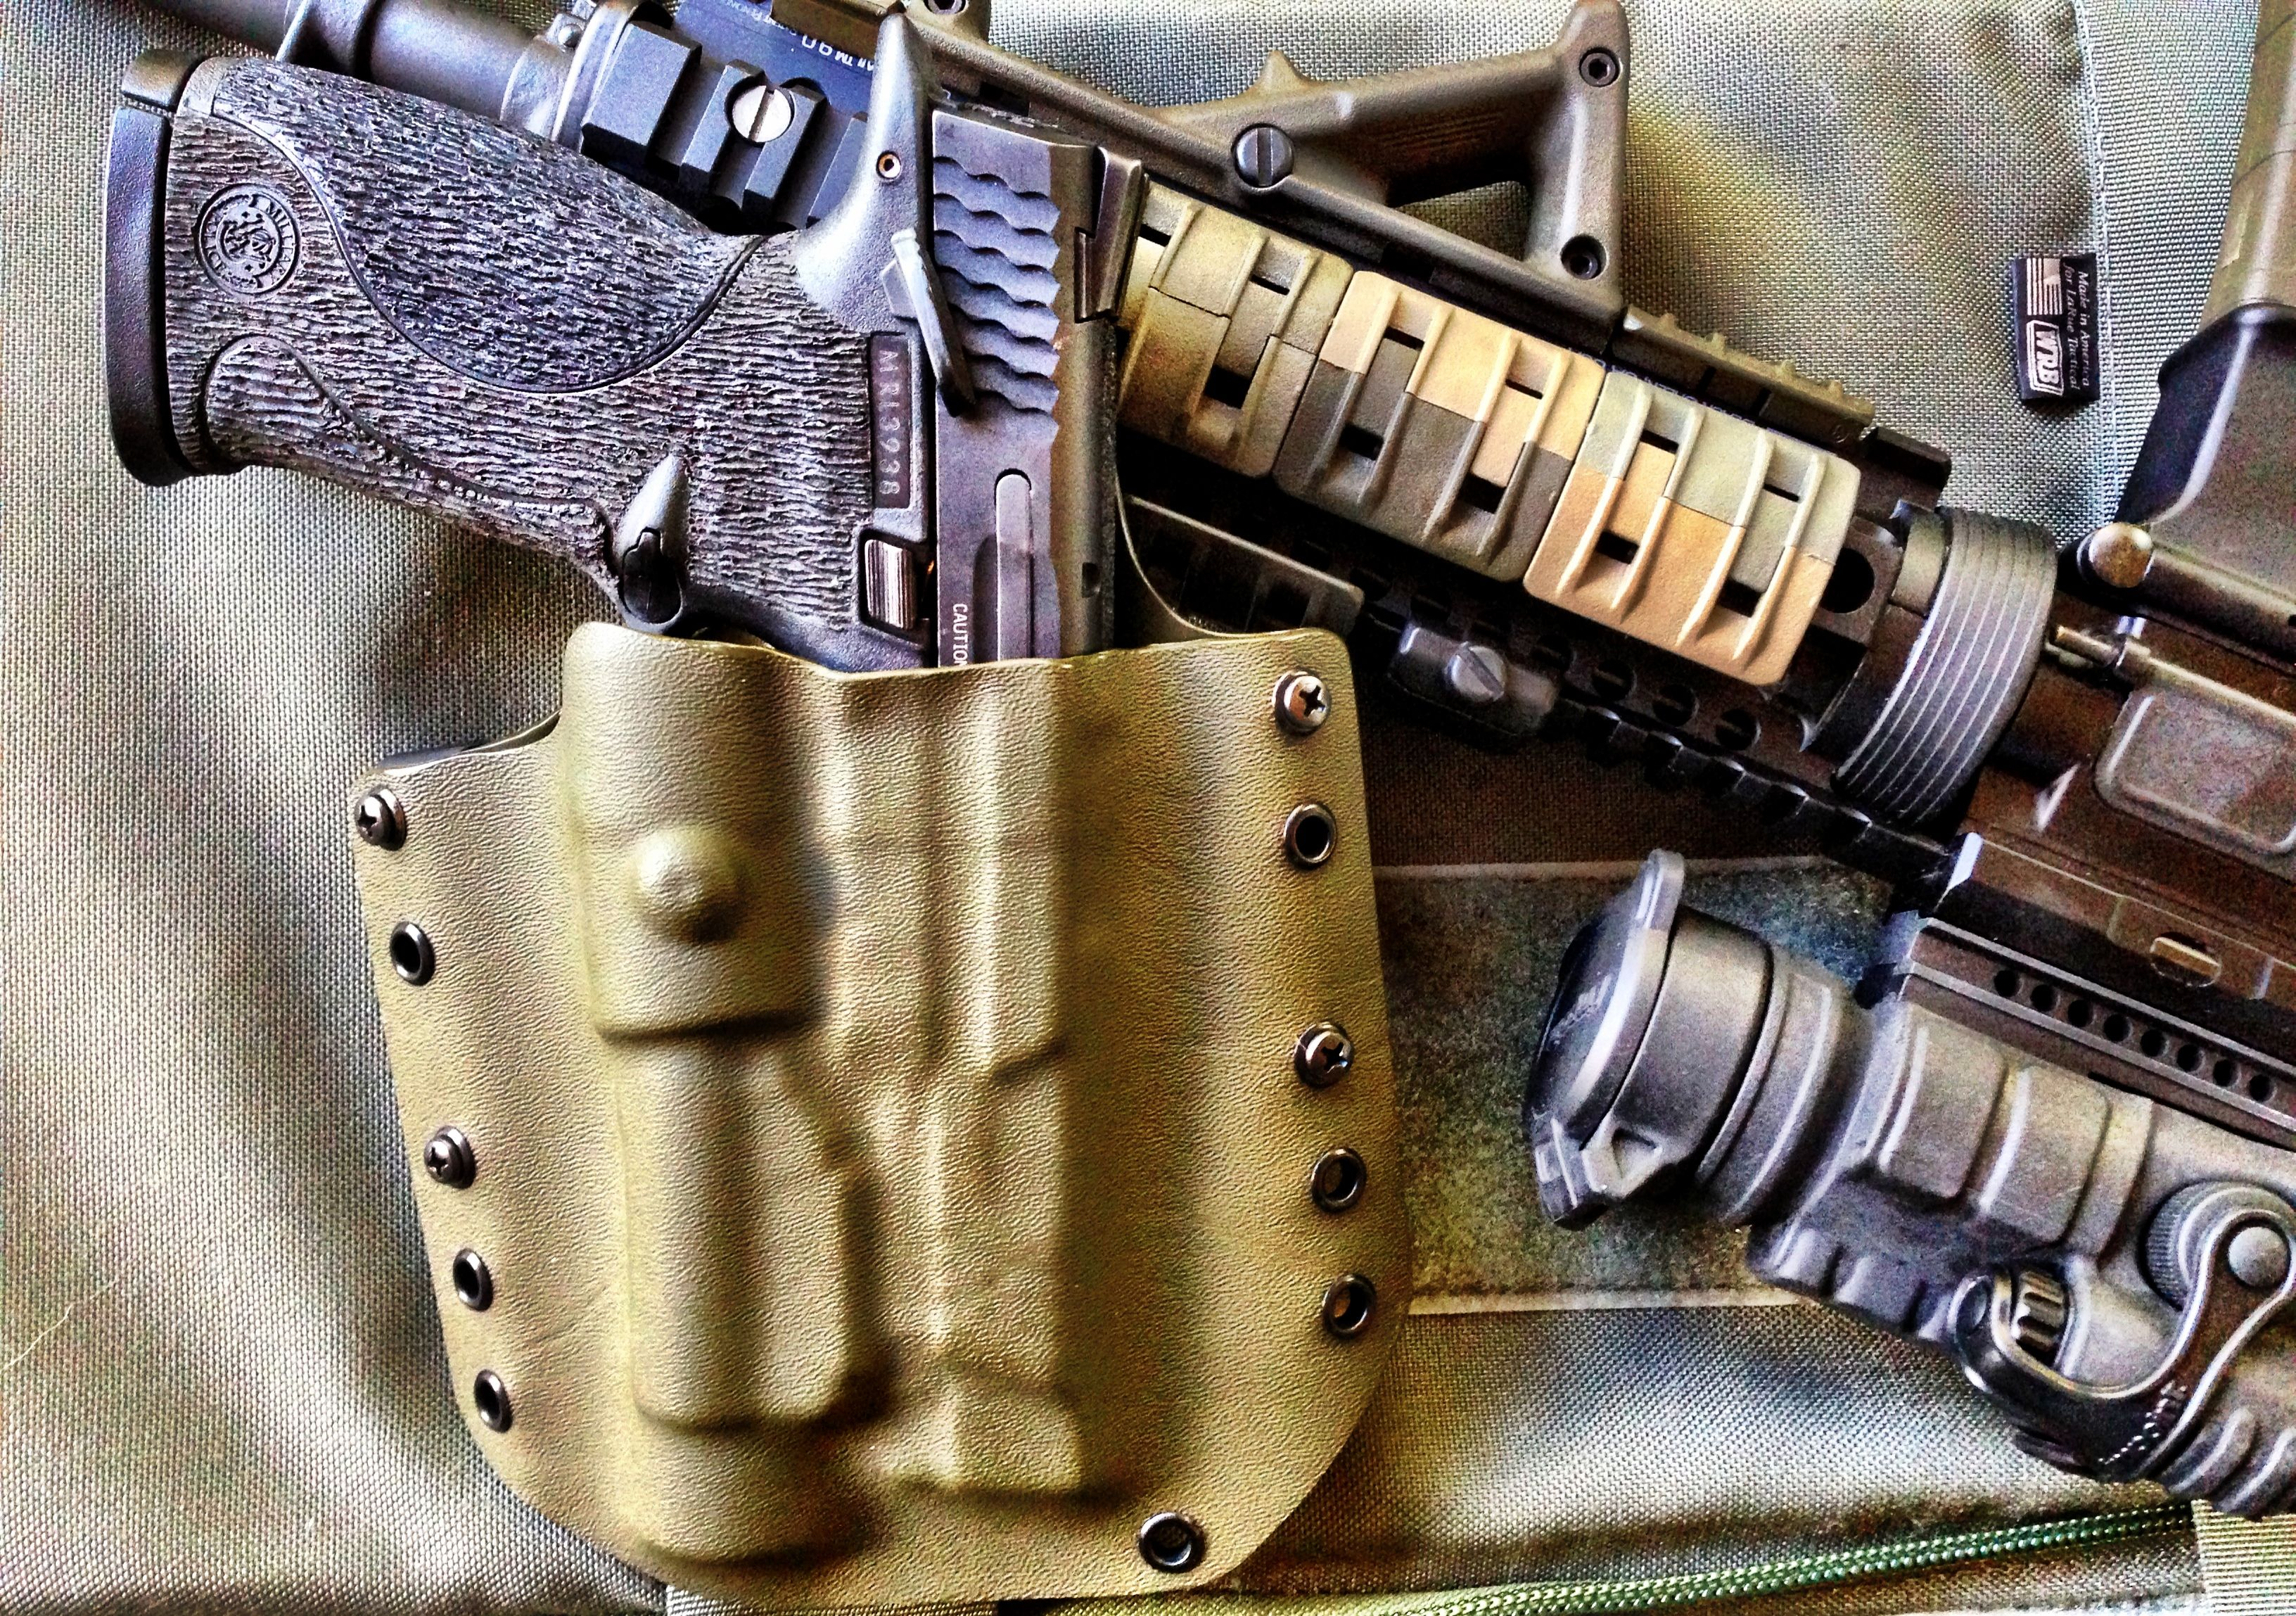 Armatus Carry CRD holster